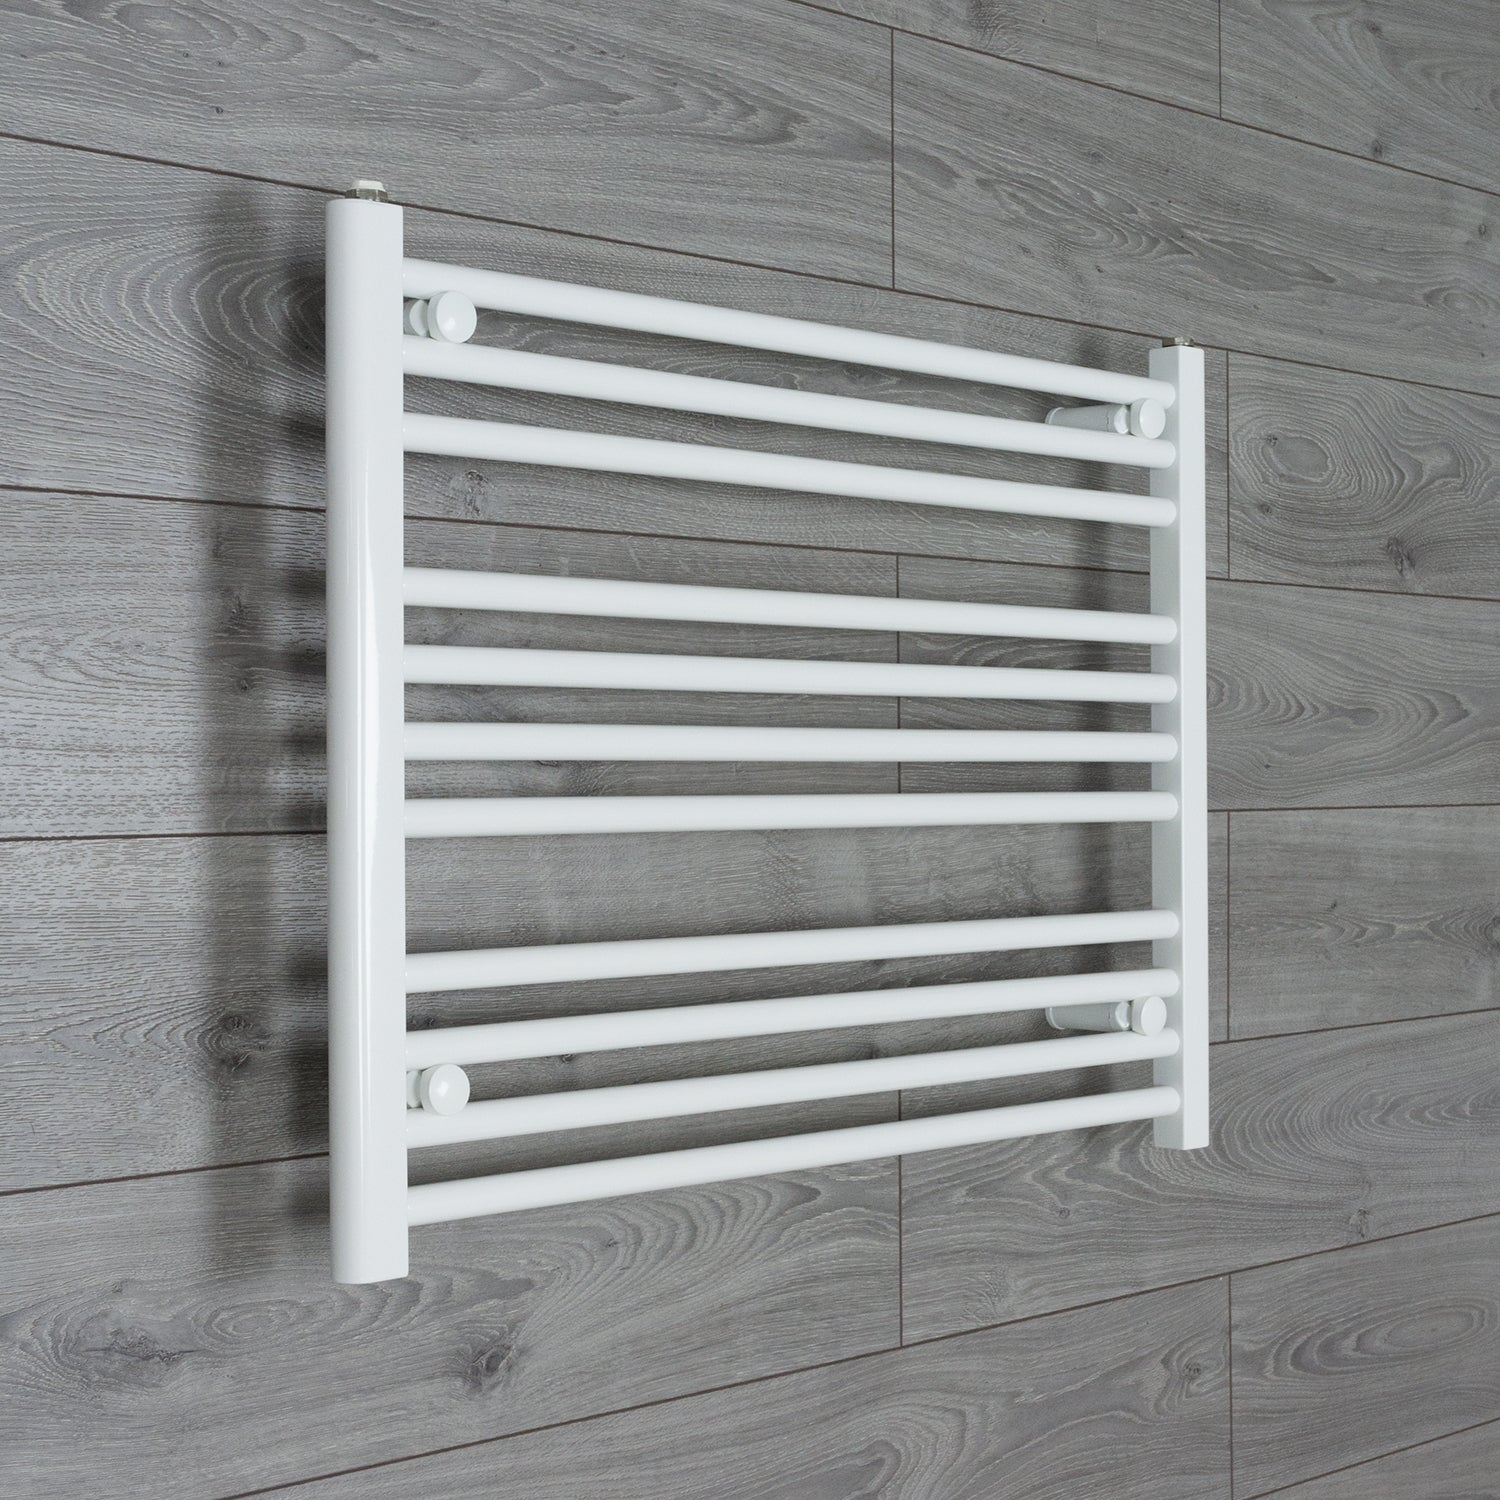 850mm Wide 600mm High White Towel Rail Radiator